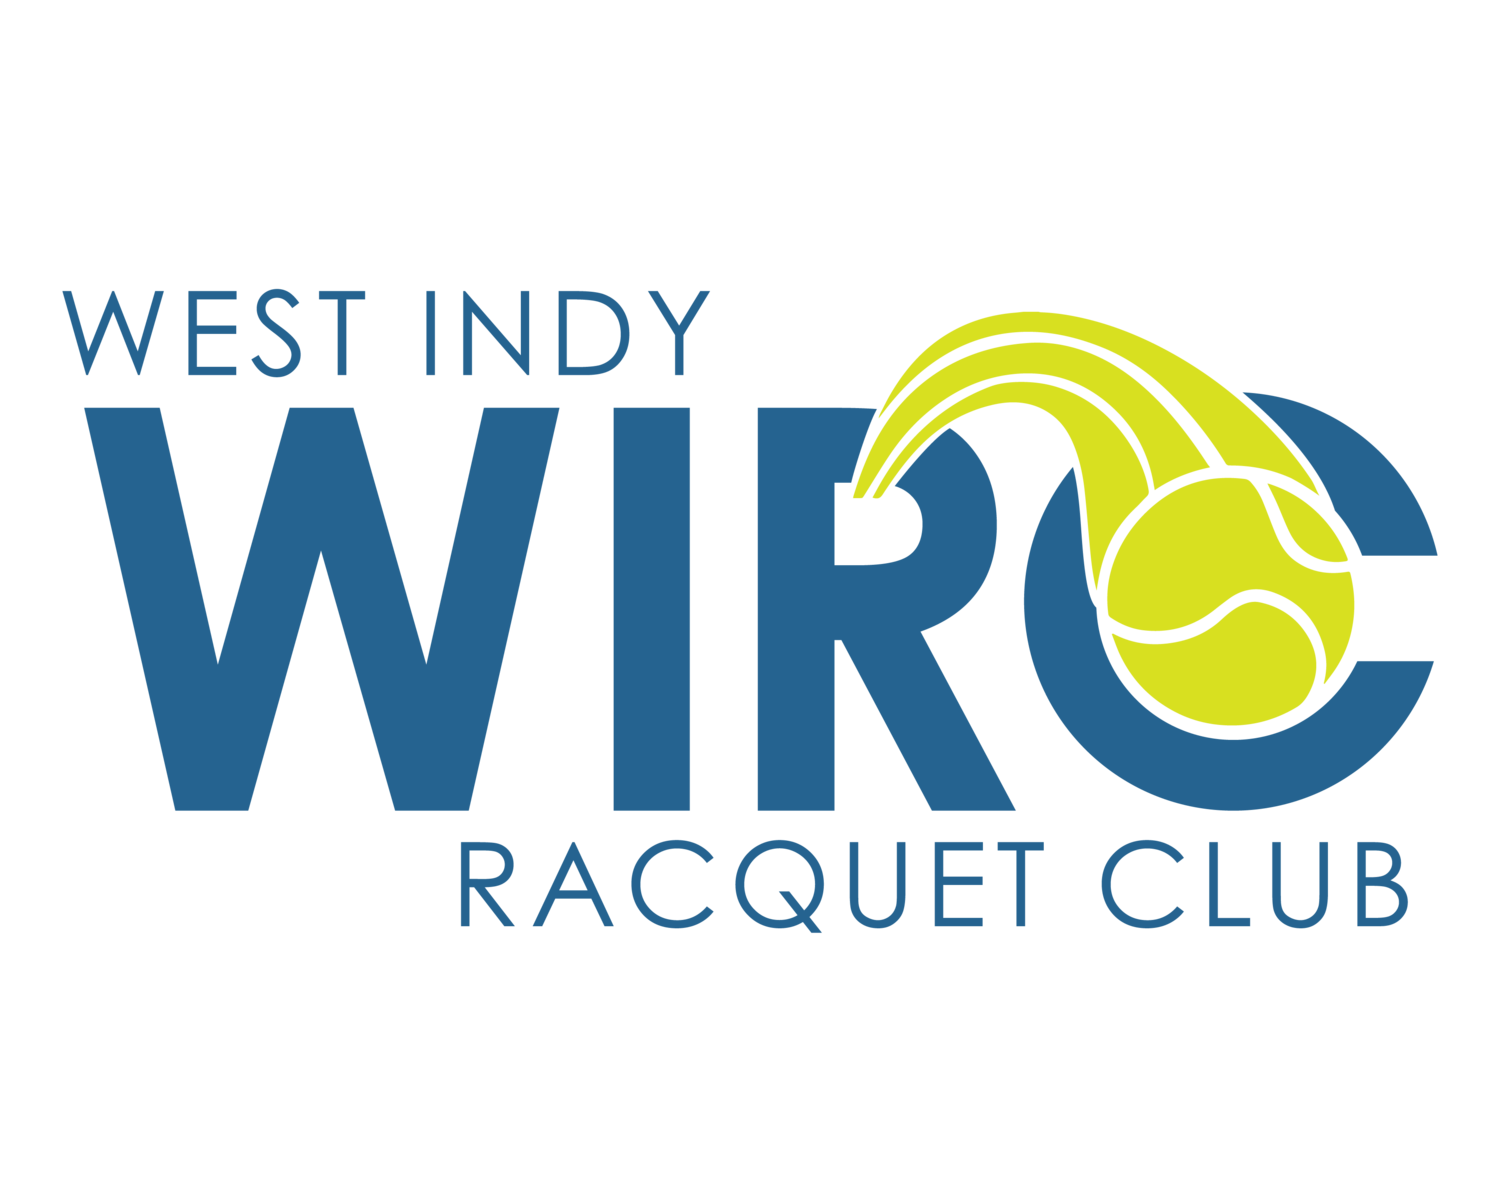 West Indy Racquet Club